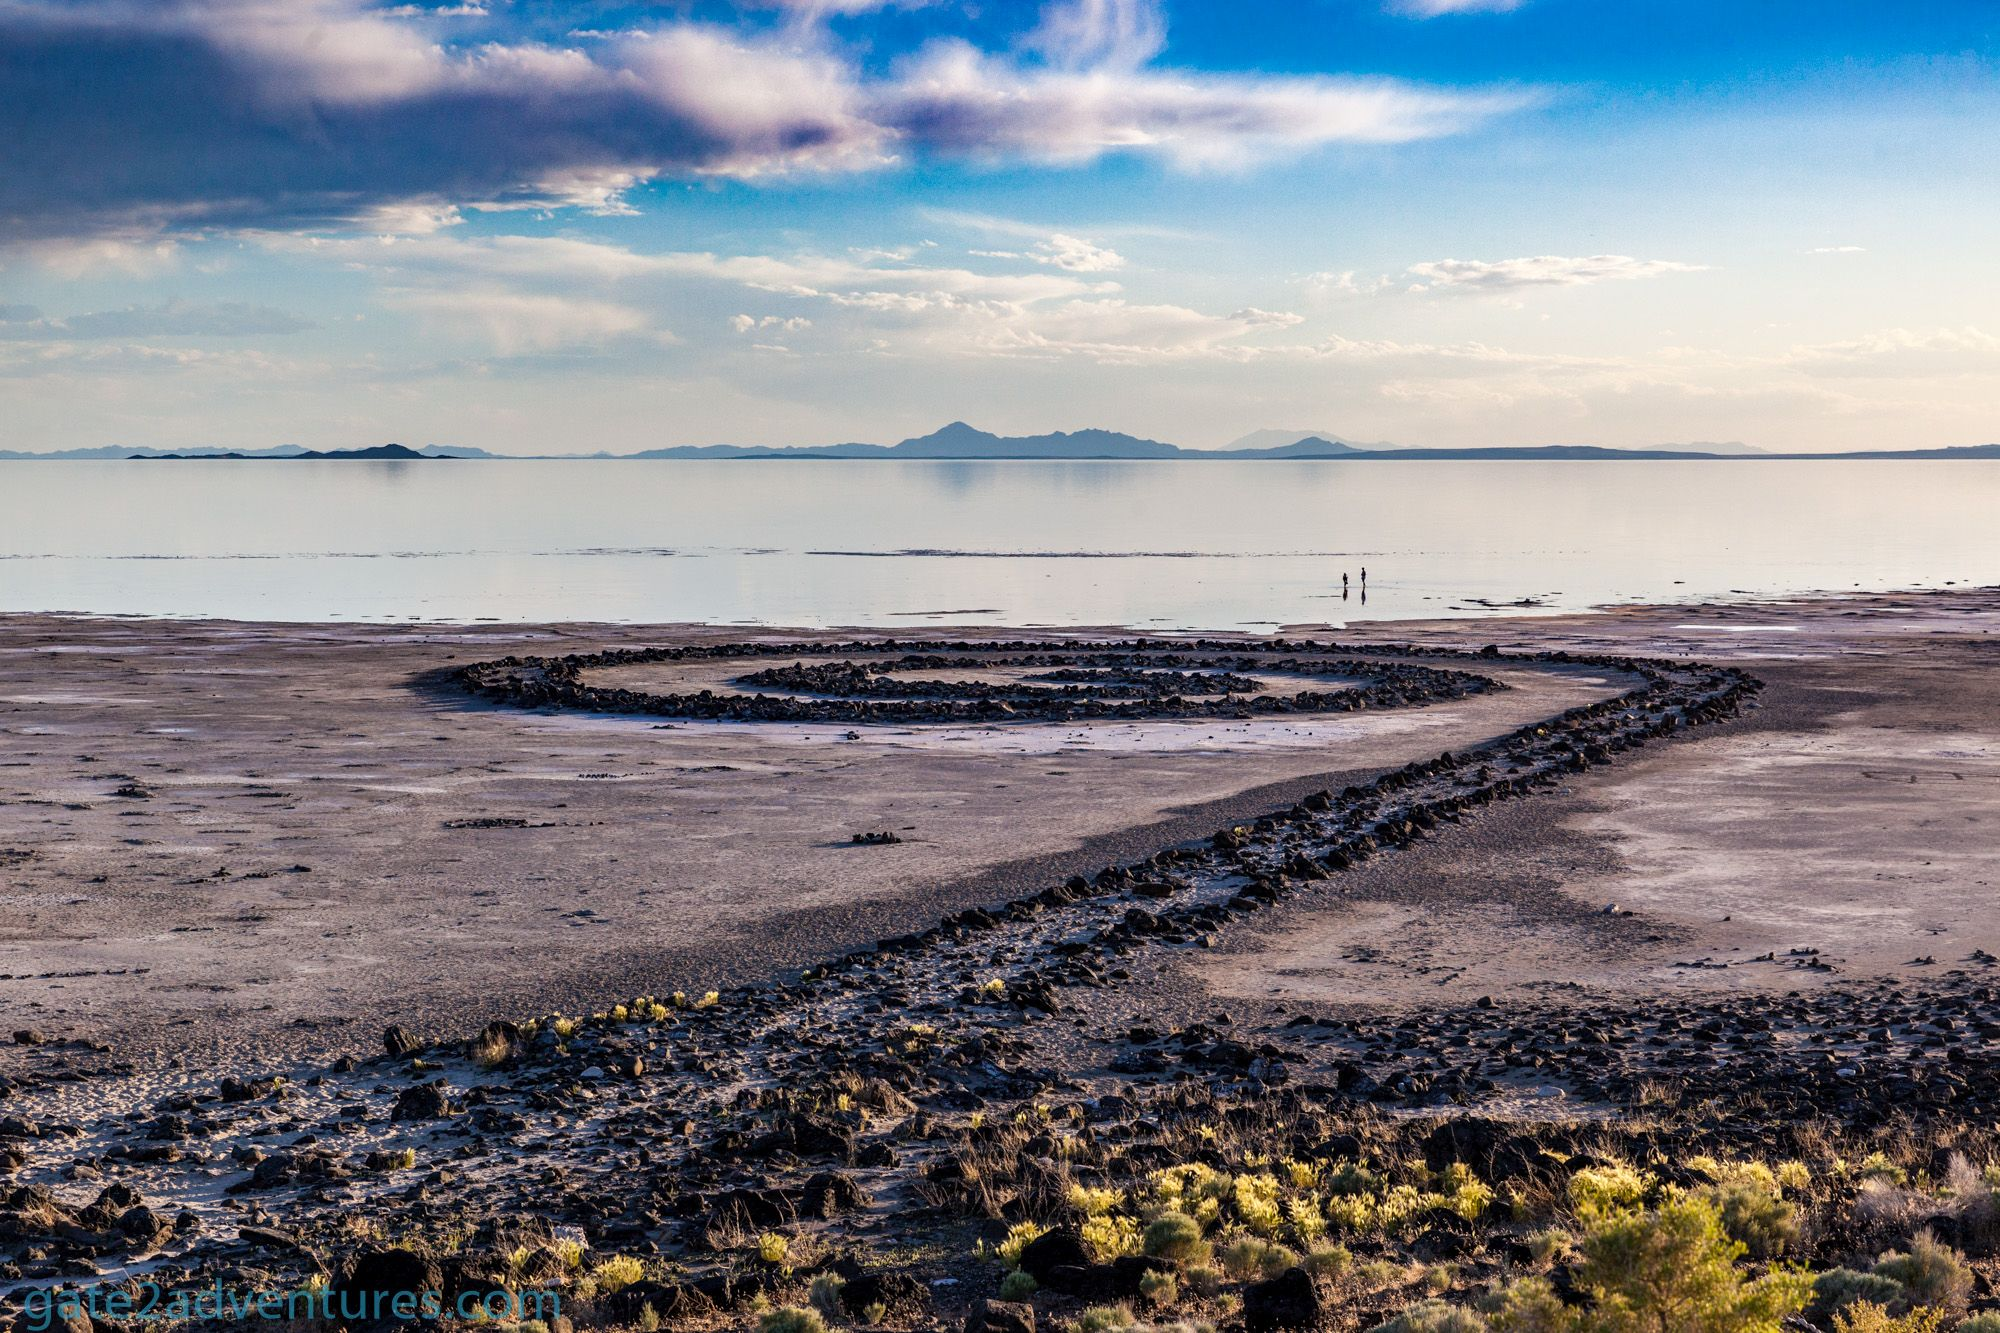 Visiting the Spiral Jetty at Rozel Point, Great Salt Lake